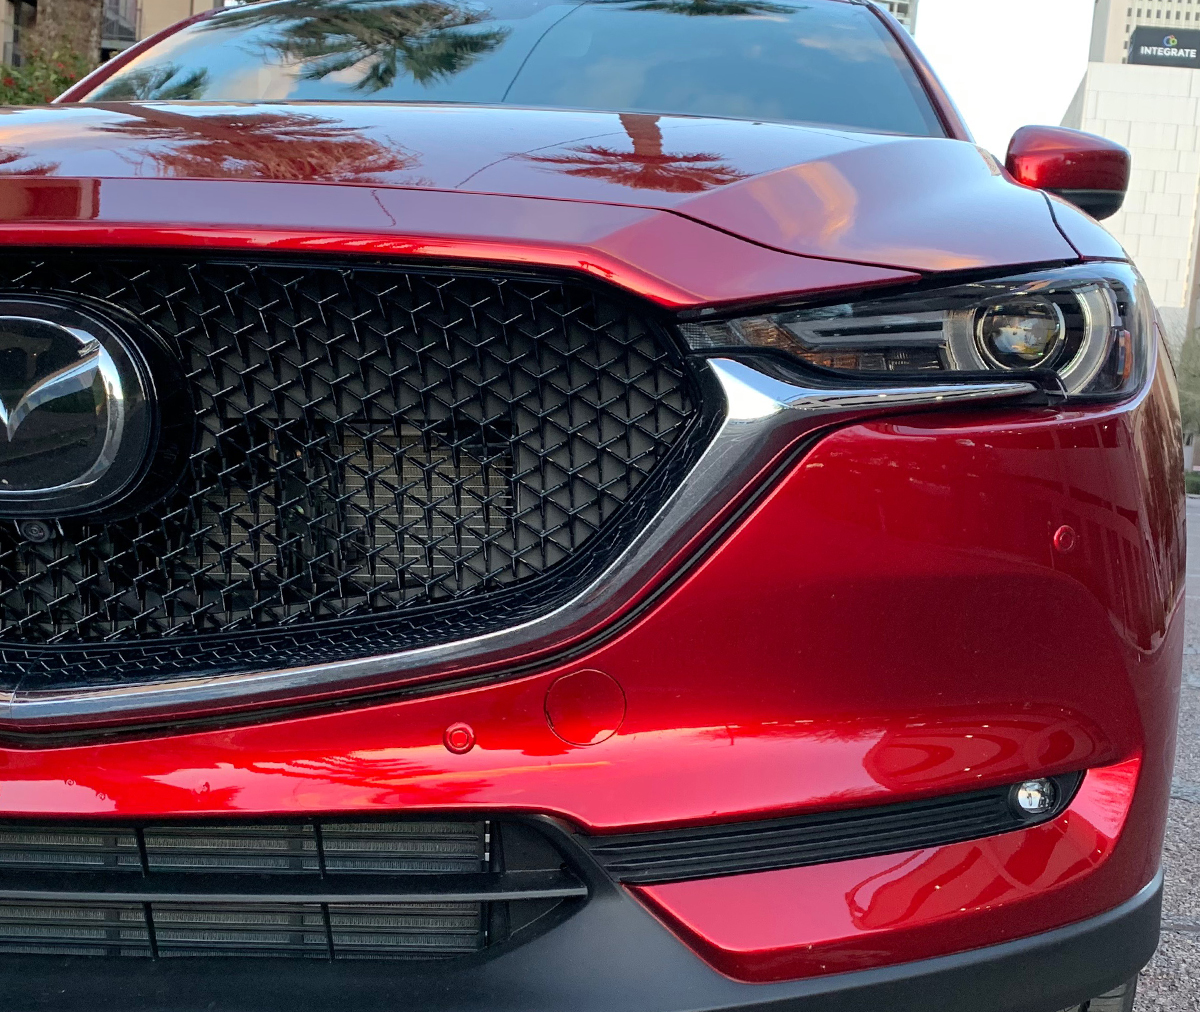 Mazda CX-5 Continues To Punch Above Its Weight In Compact